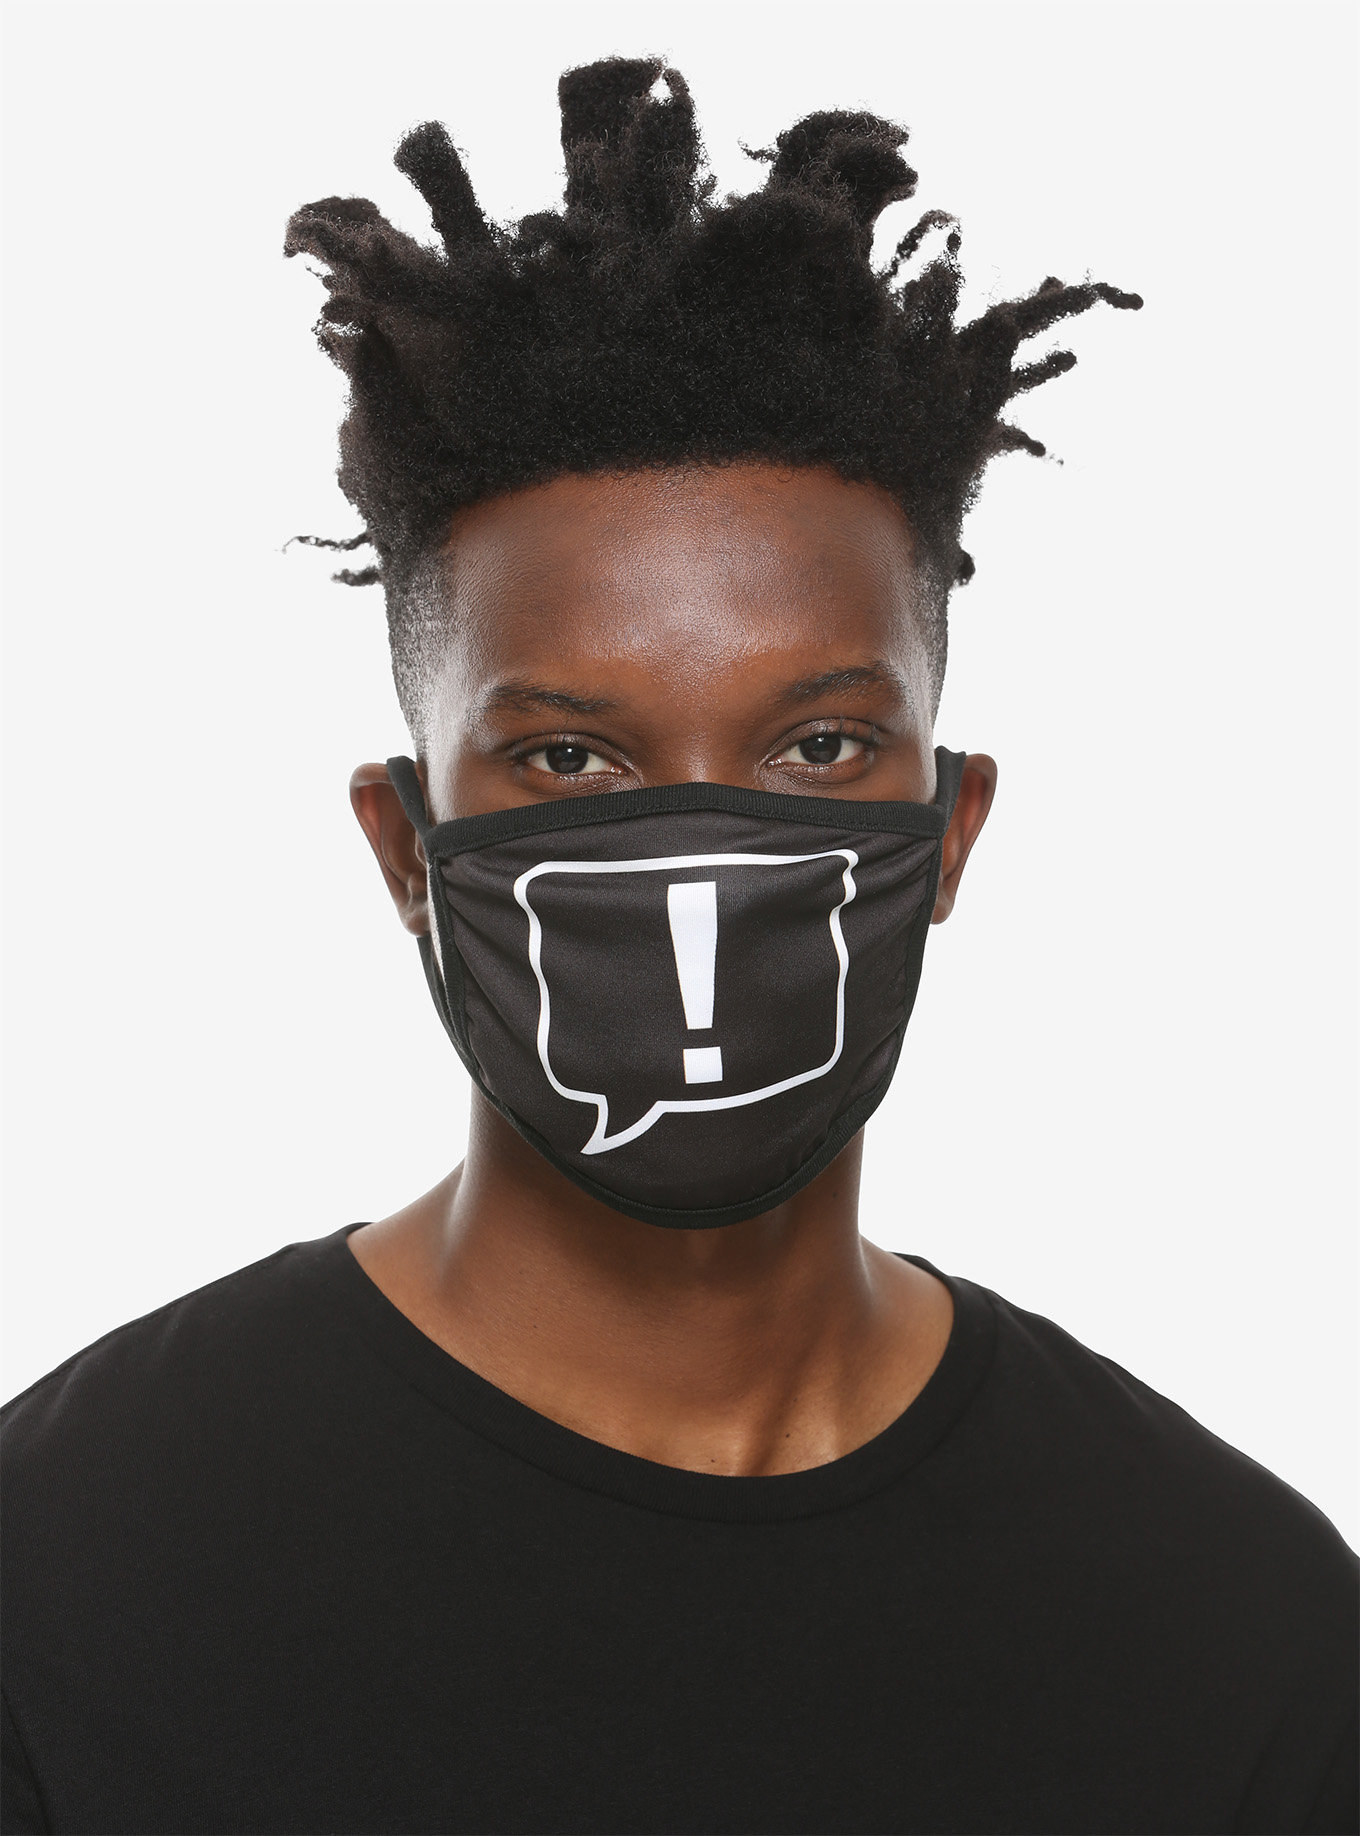 Model wearing black mask with white exclamation mark in center